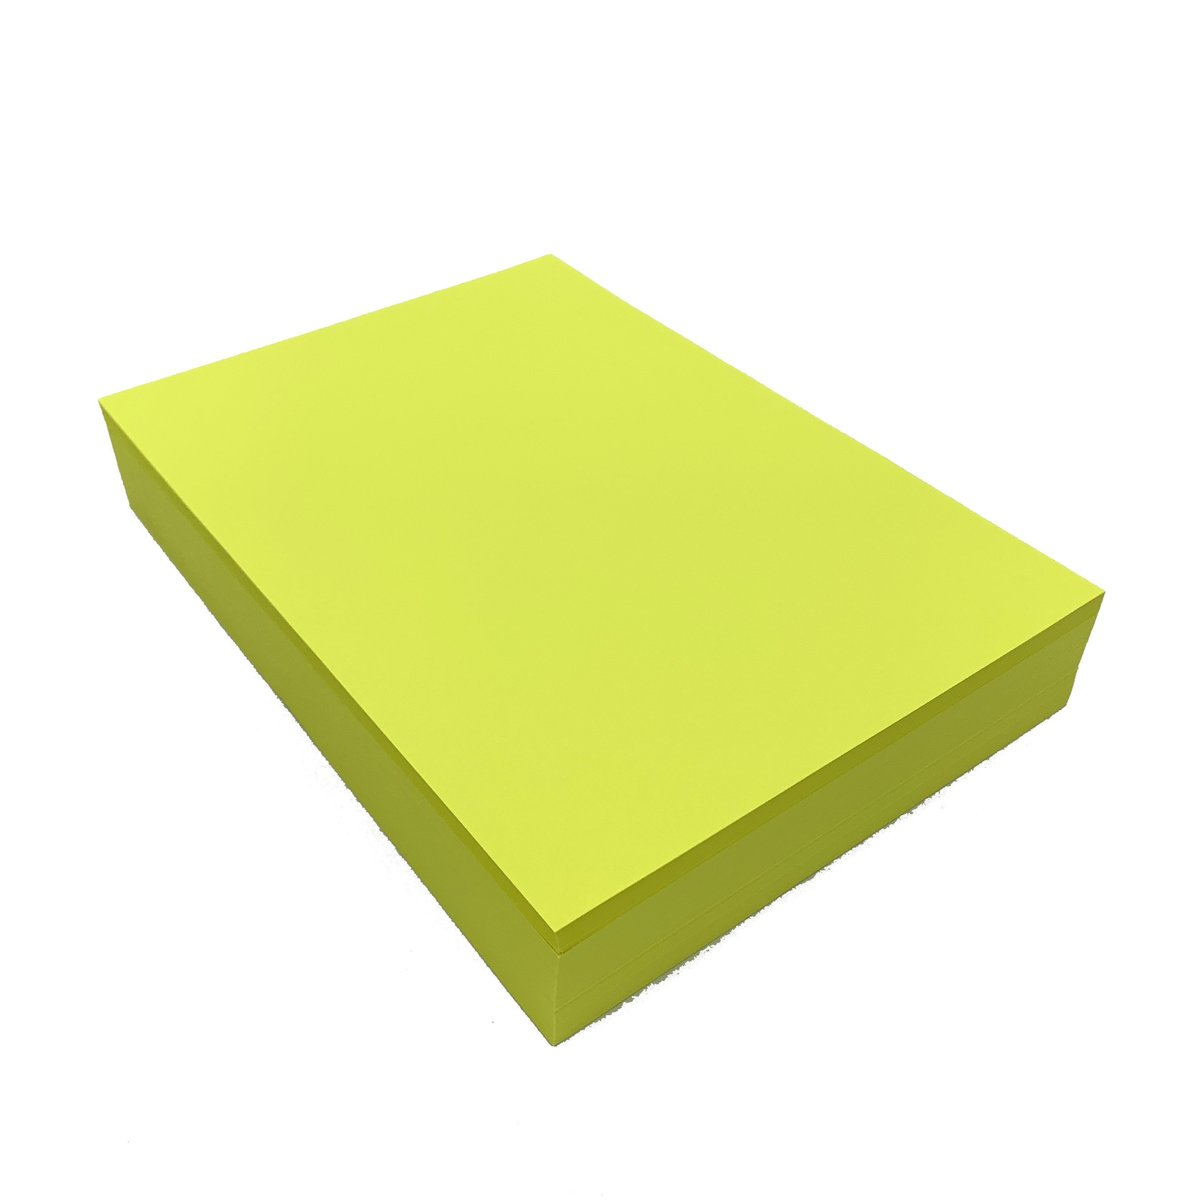 75gsm A4 Fluorescent Copy Paper - Yellow (500sheets)